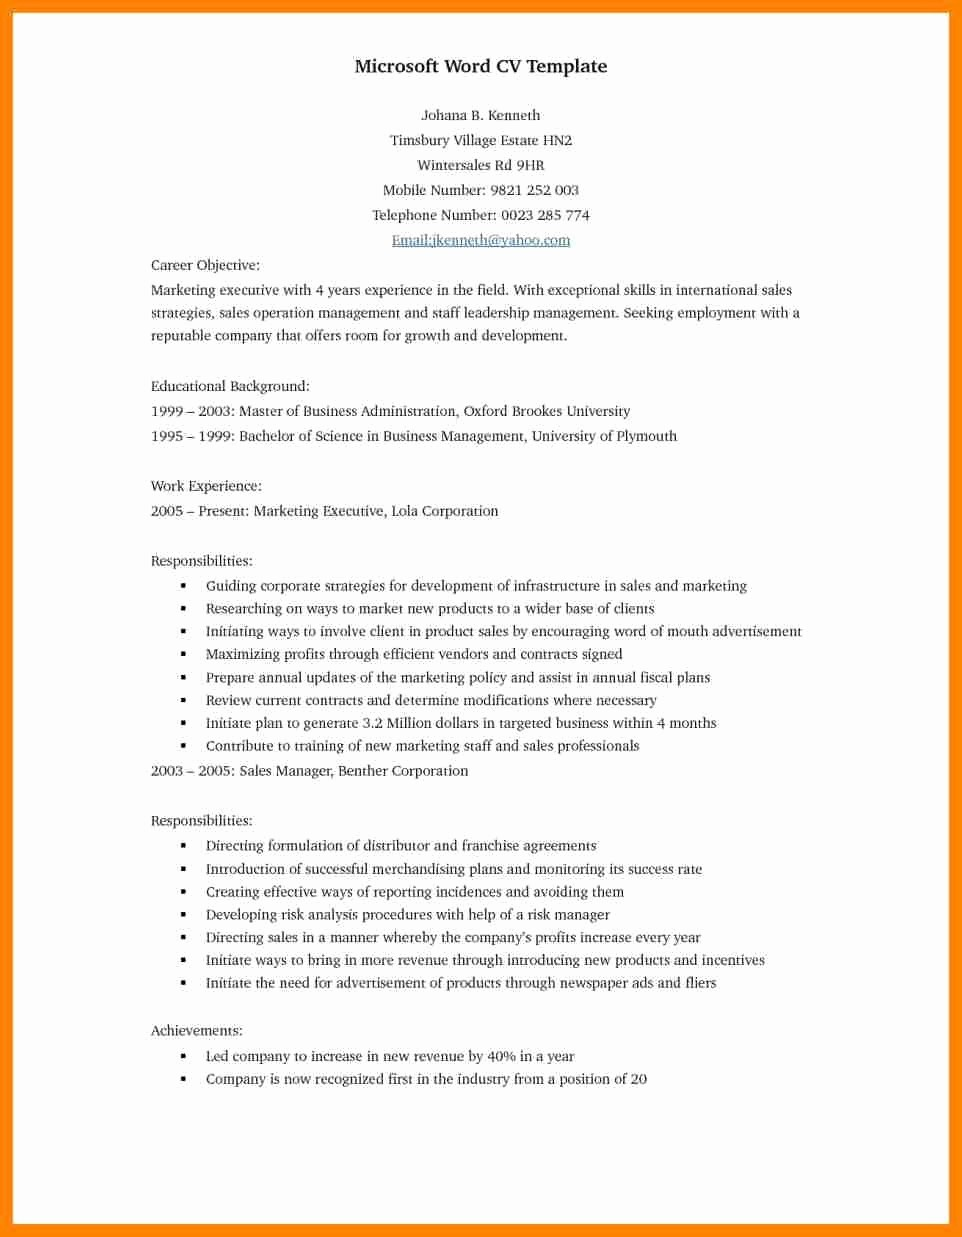 Free Resume Templates 2017 Word Awesome Resume Template Microsoft Word 2017